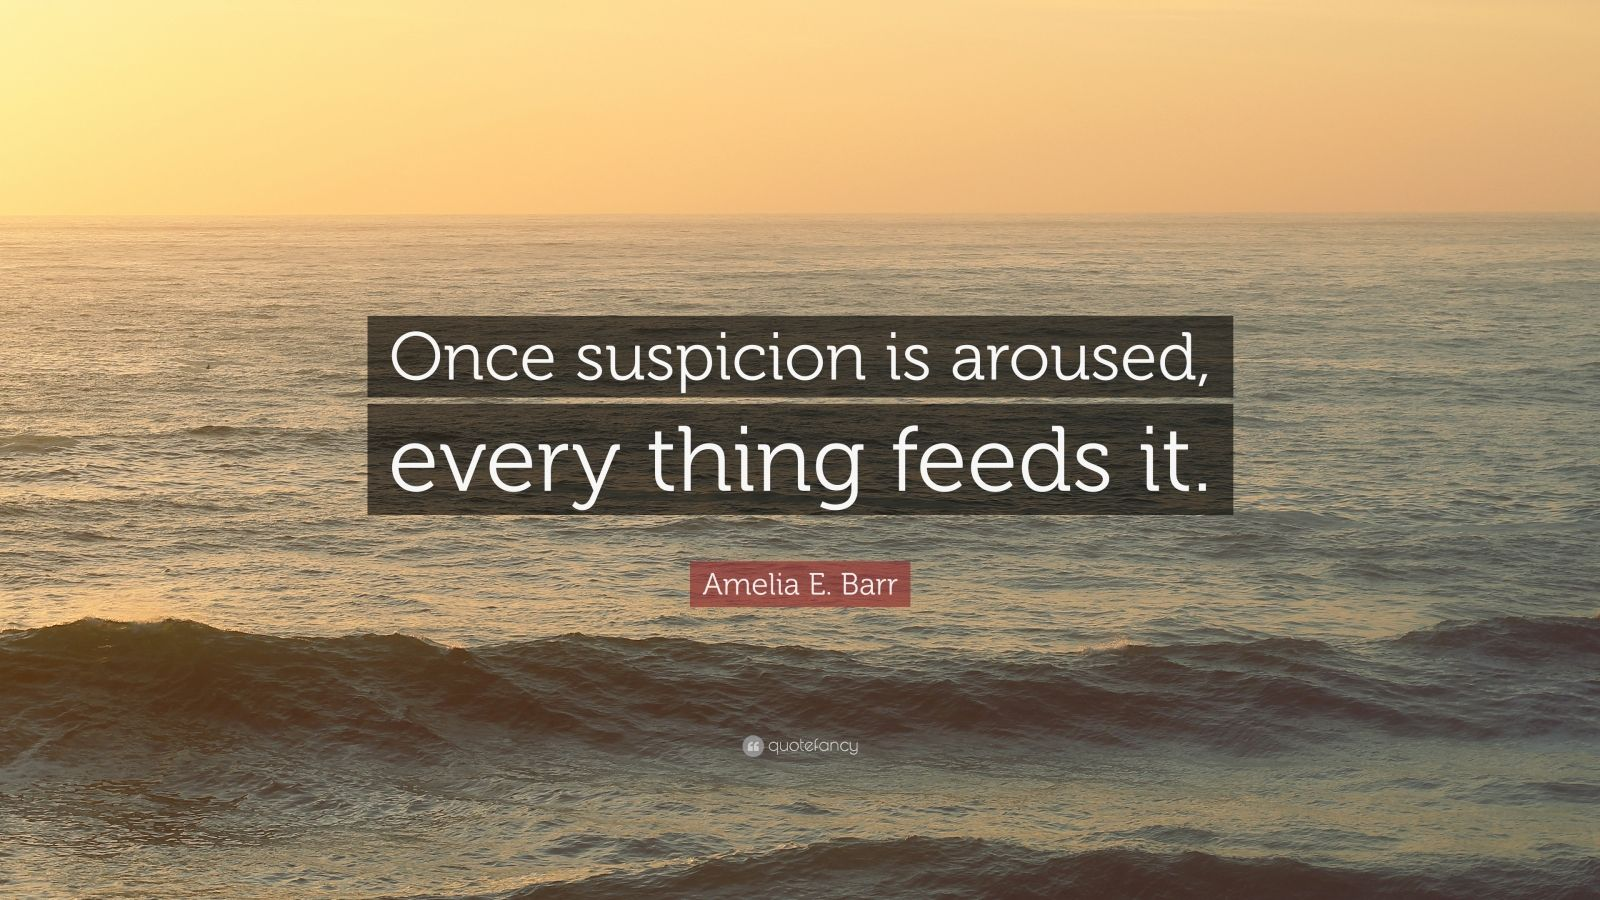 """Amelia E. Barr Quote: """"Once suspicion is aroused, every thing feeds it."""""""